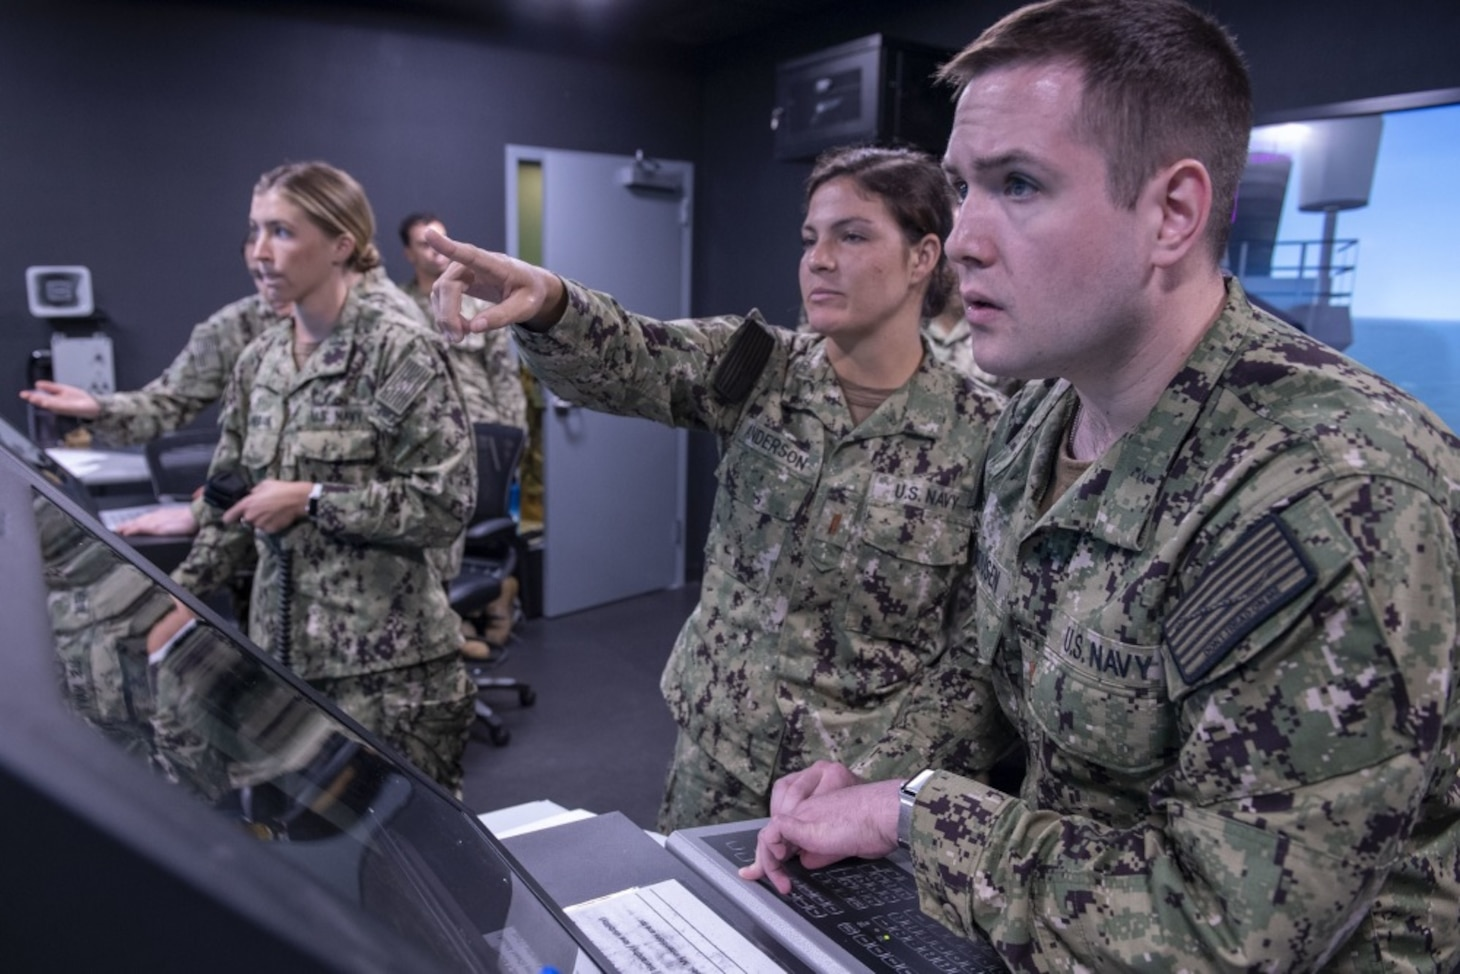 210727-N-OA516-1050 SAN DIEGO (July 27,2021) – Students attending the officer of the deck training course at the Mariner Skills Training Center, Pacific (MSTCPAC), take part in a simulated ship handling exercise. MSTCPAC, established in October 2020, conducts hands-on seamanship and navigation training as part of the revamped Surface Warfare Officer Training Pipeline. (U.S. Navy photo by Mass Communication Specialist 2nd Class Kevin C. Leitner)